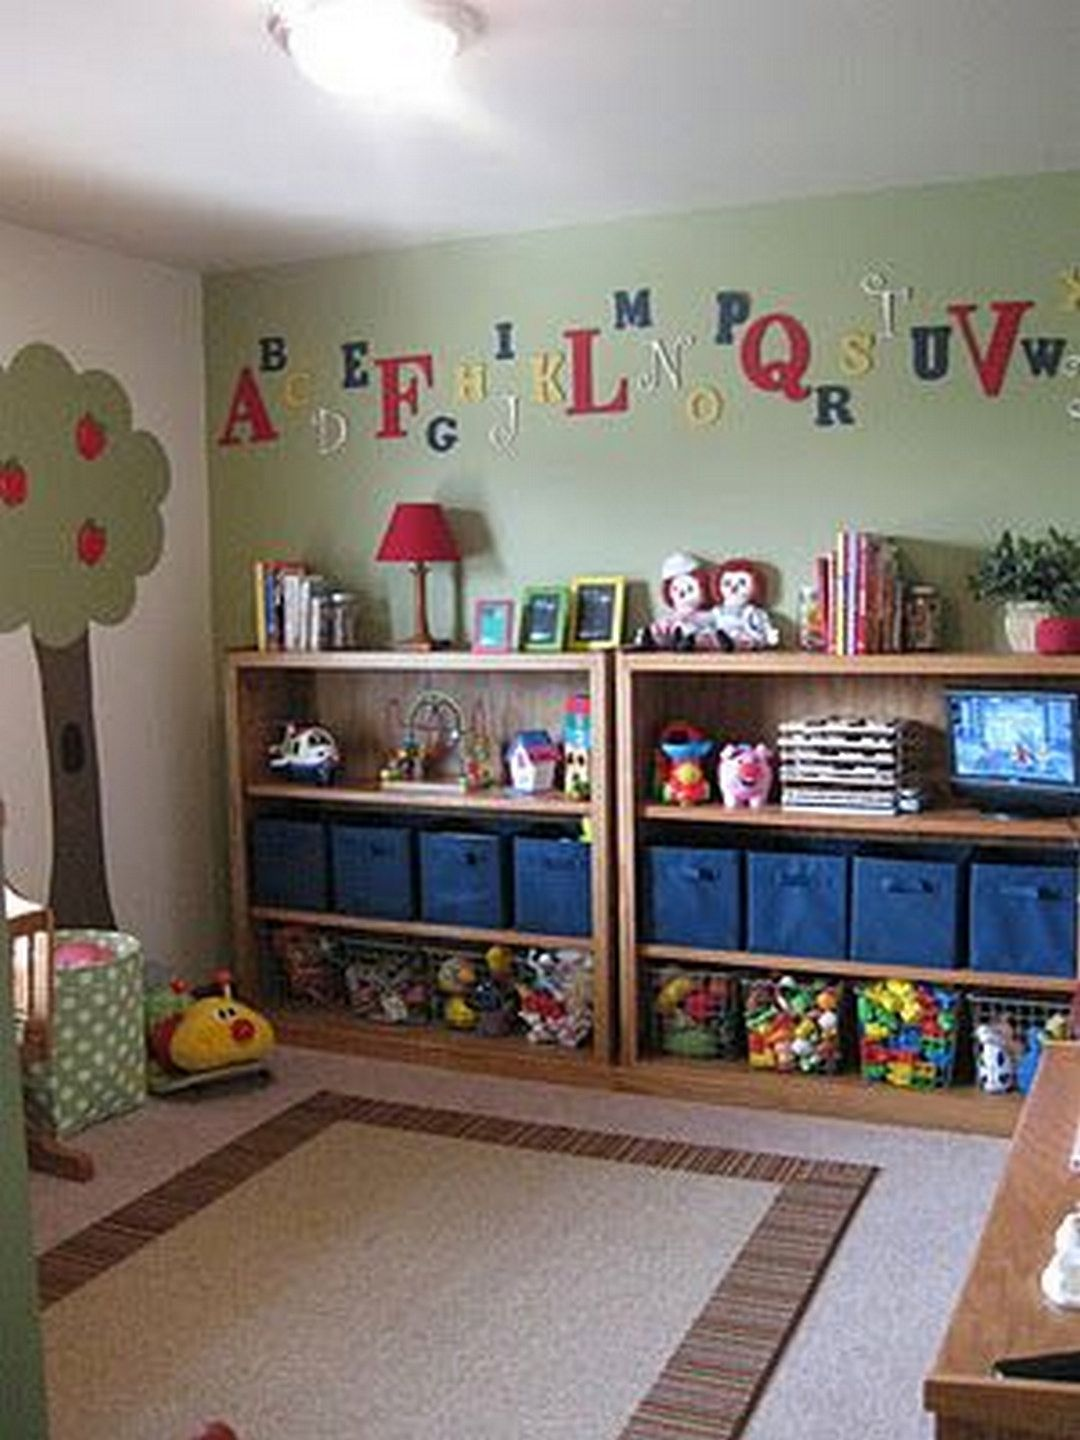 8 Kids Storage And Organization Ideas: 10 Creative Toy Storage Tips For Your Kids